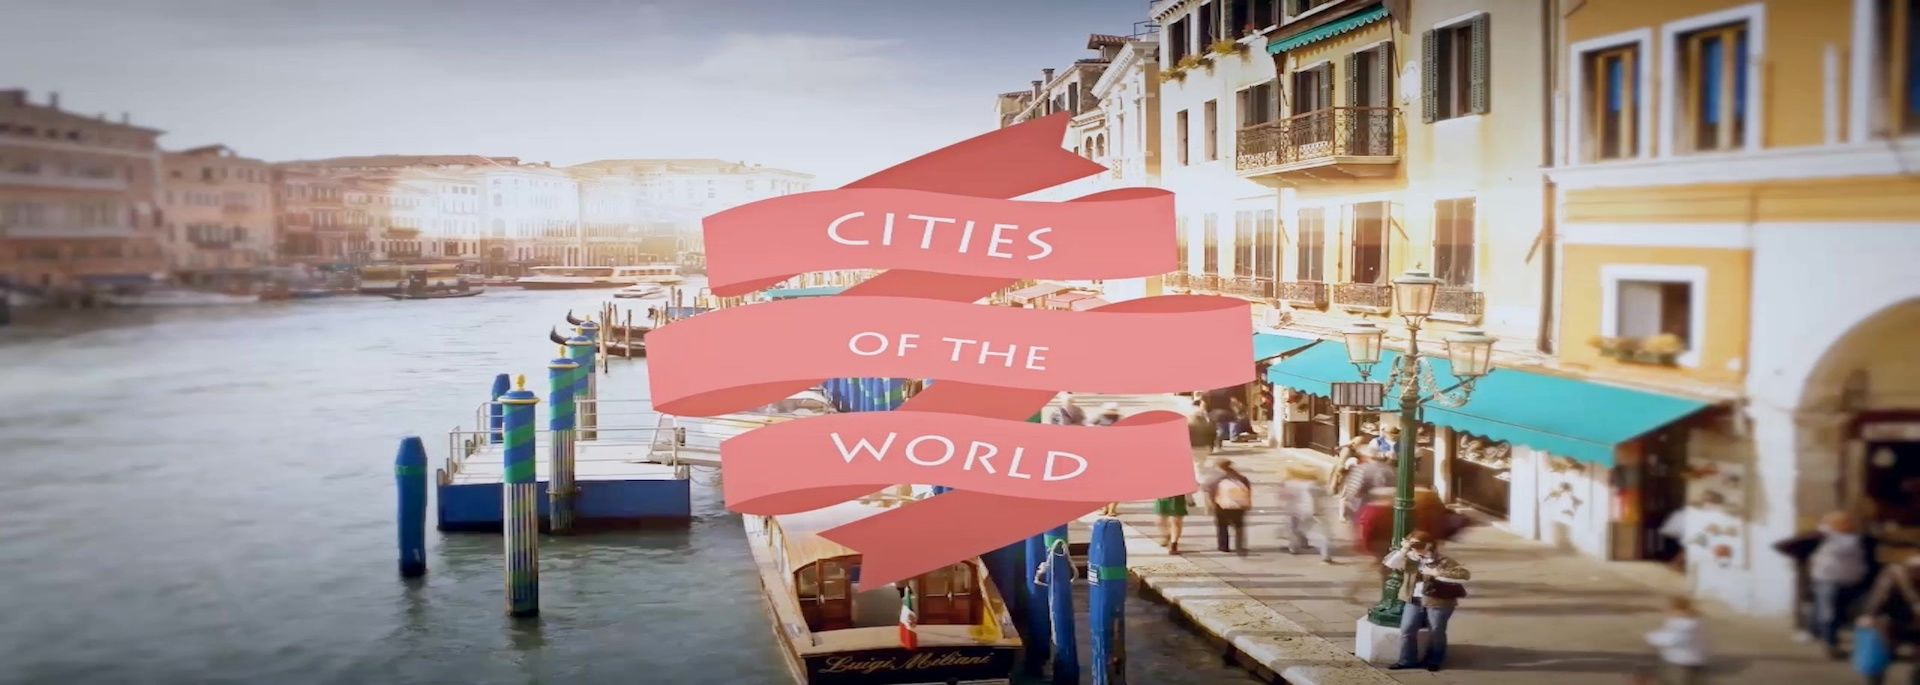 #CITIES OF THE WORLD channel